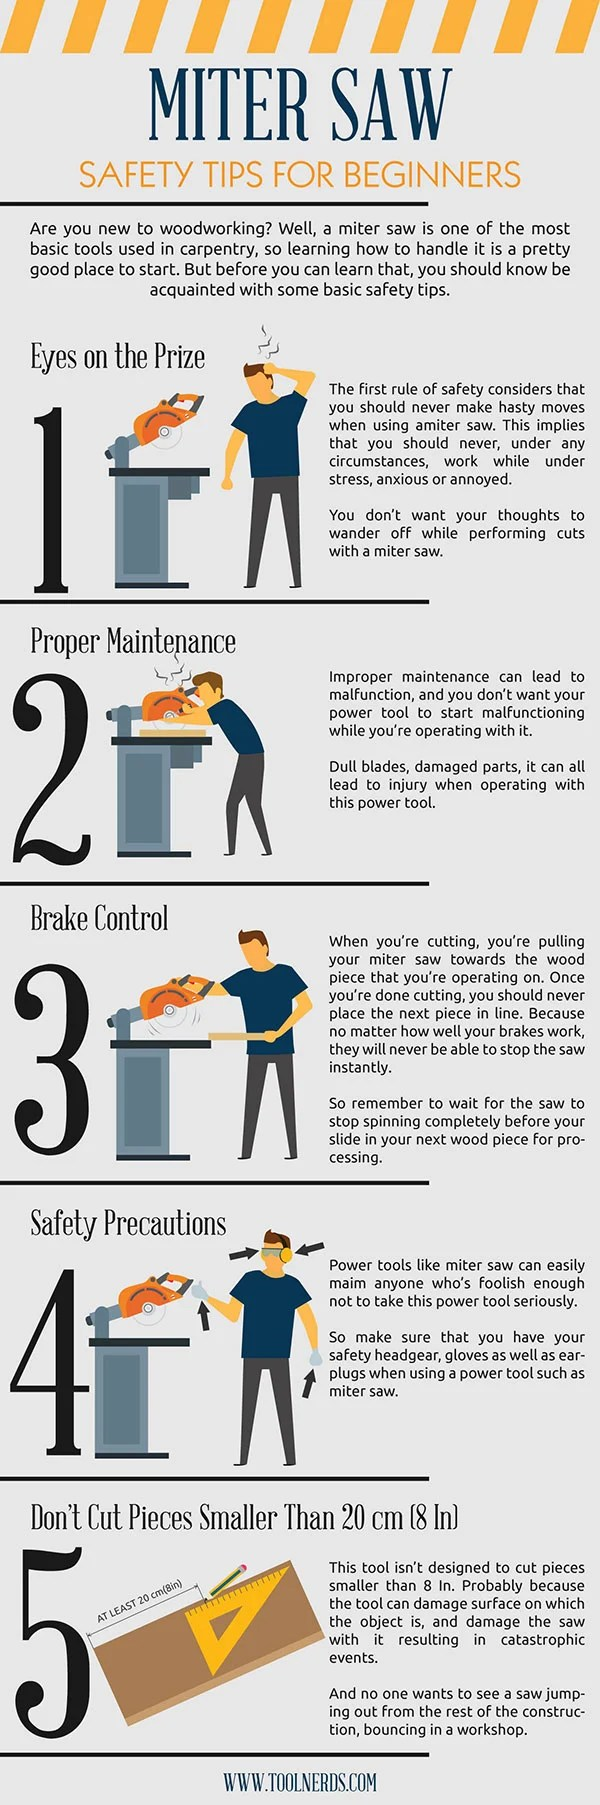 Miter Saw Safety Tips for Beginners